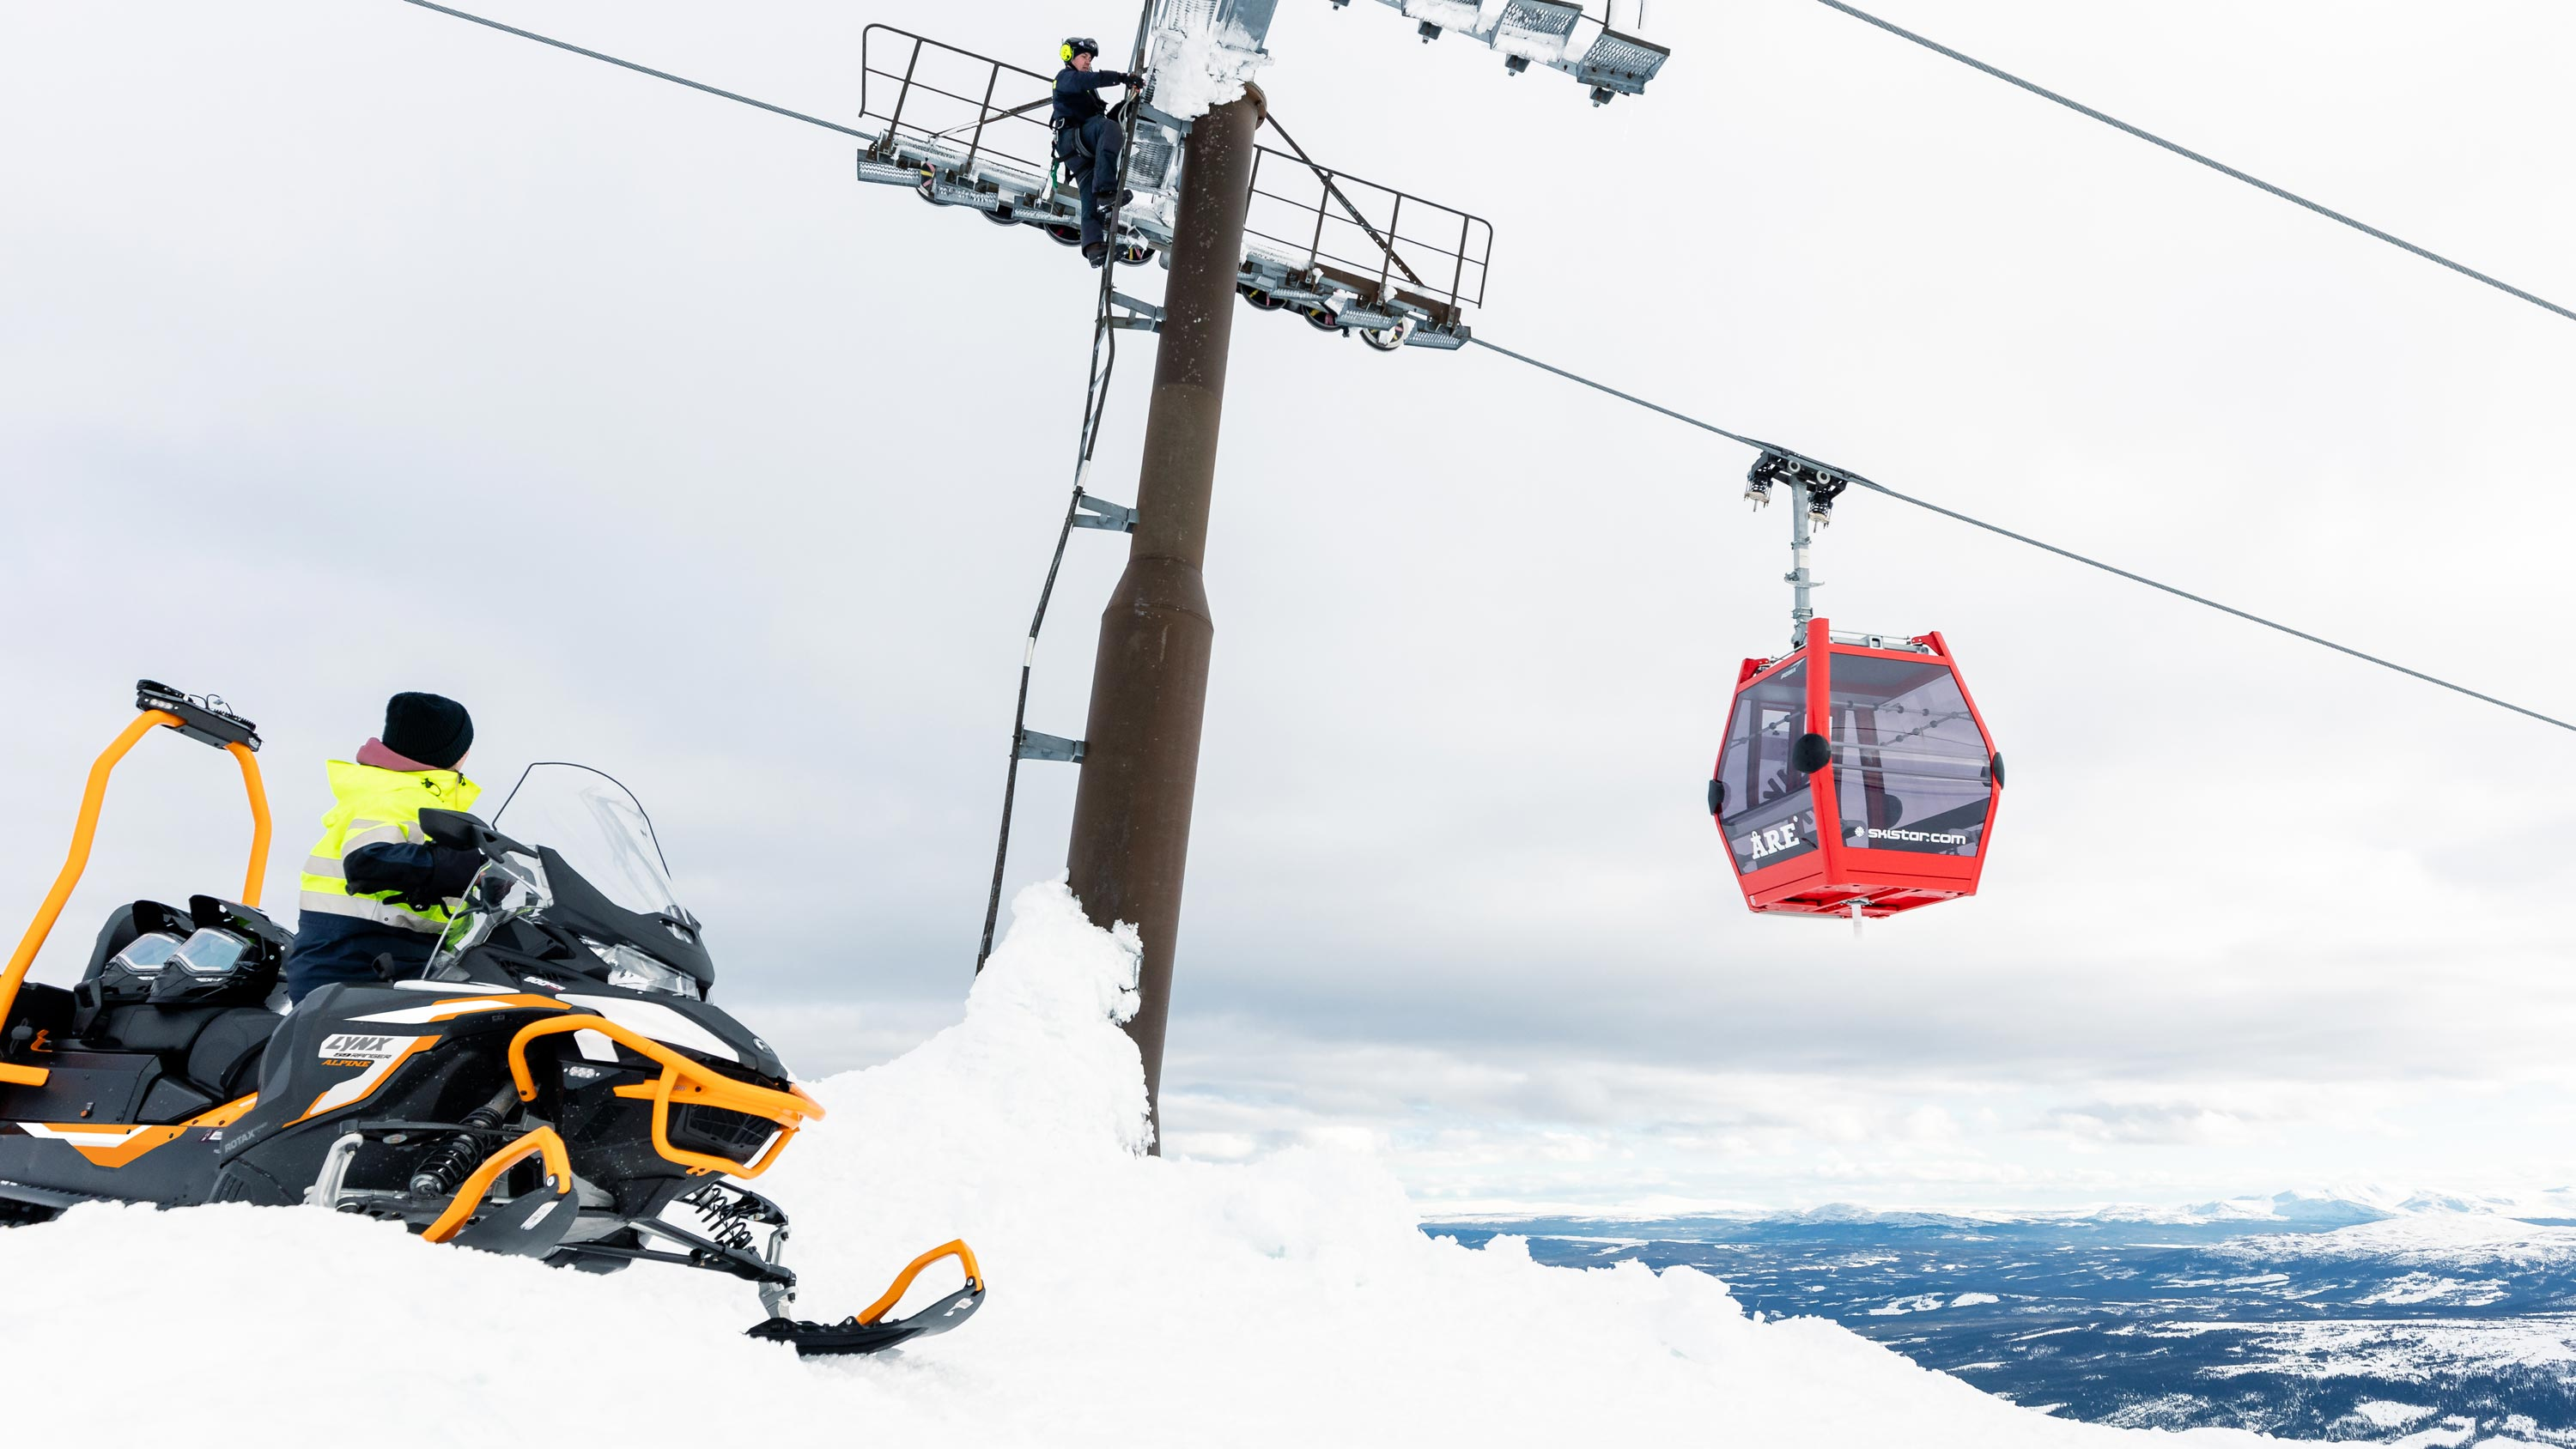 Person riding Lynx 59 Ranger snowmobile in a ski resort